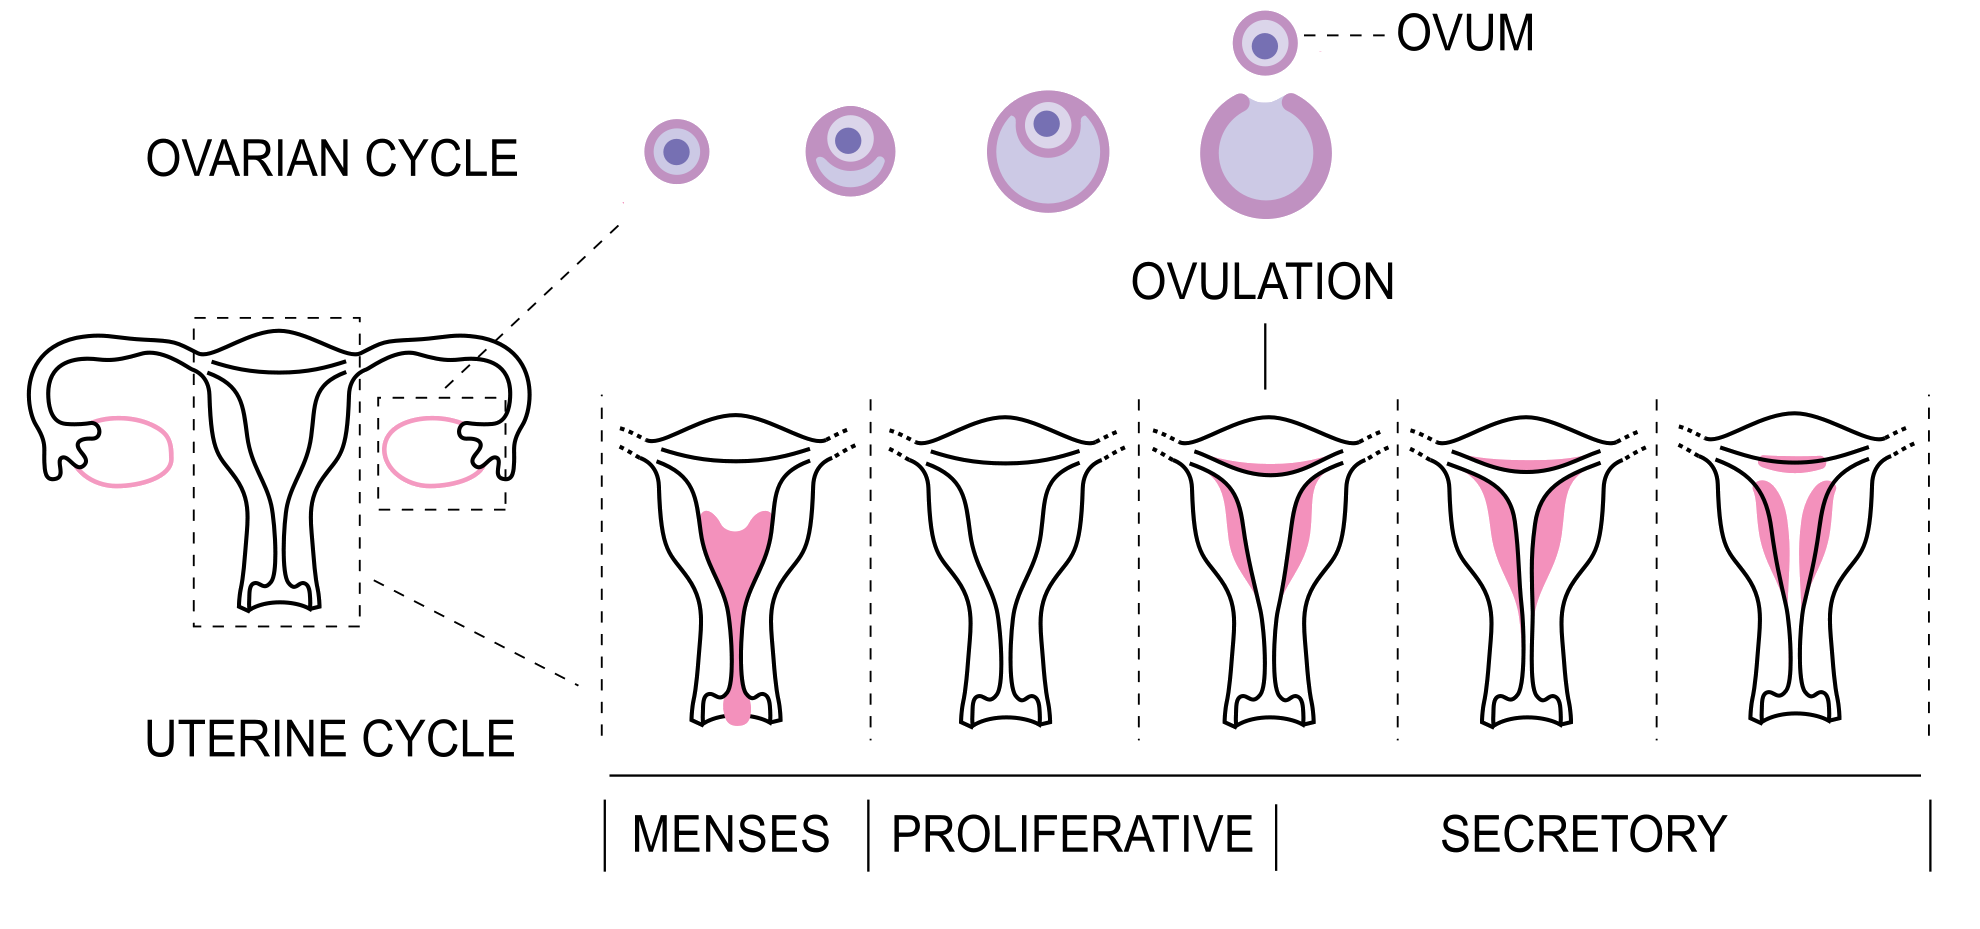 Changes in endometrium during the menstrual cycle.